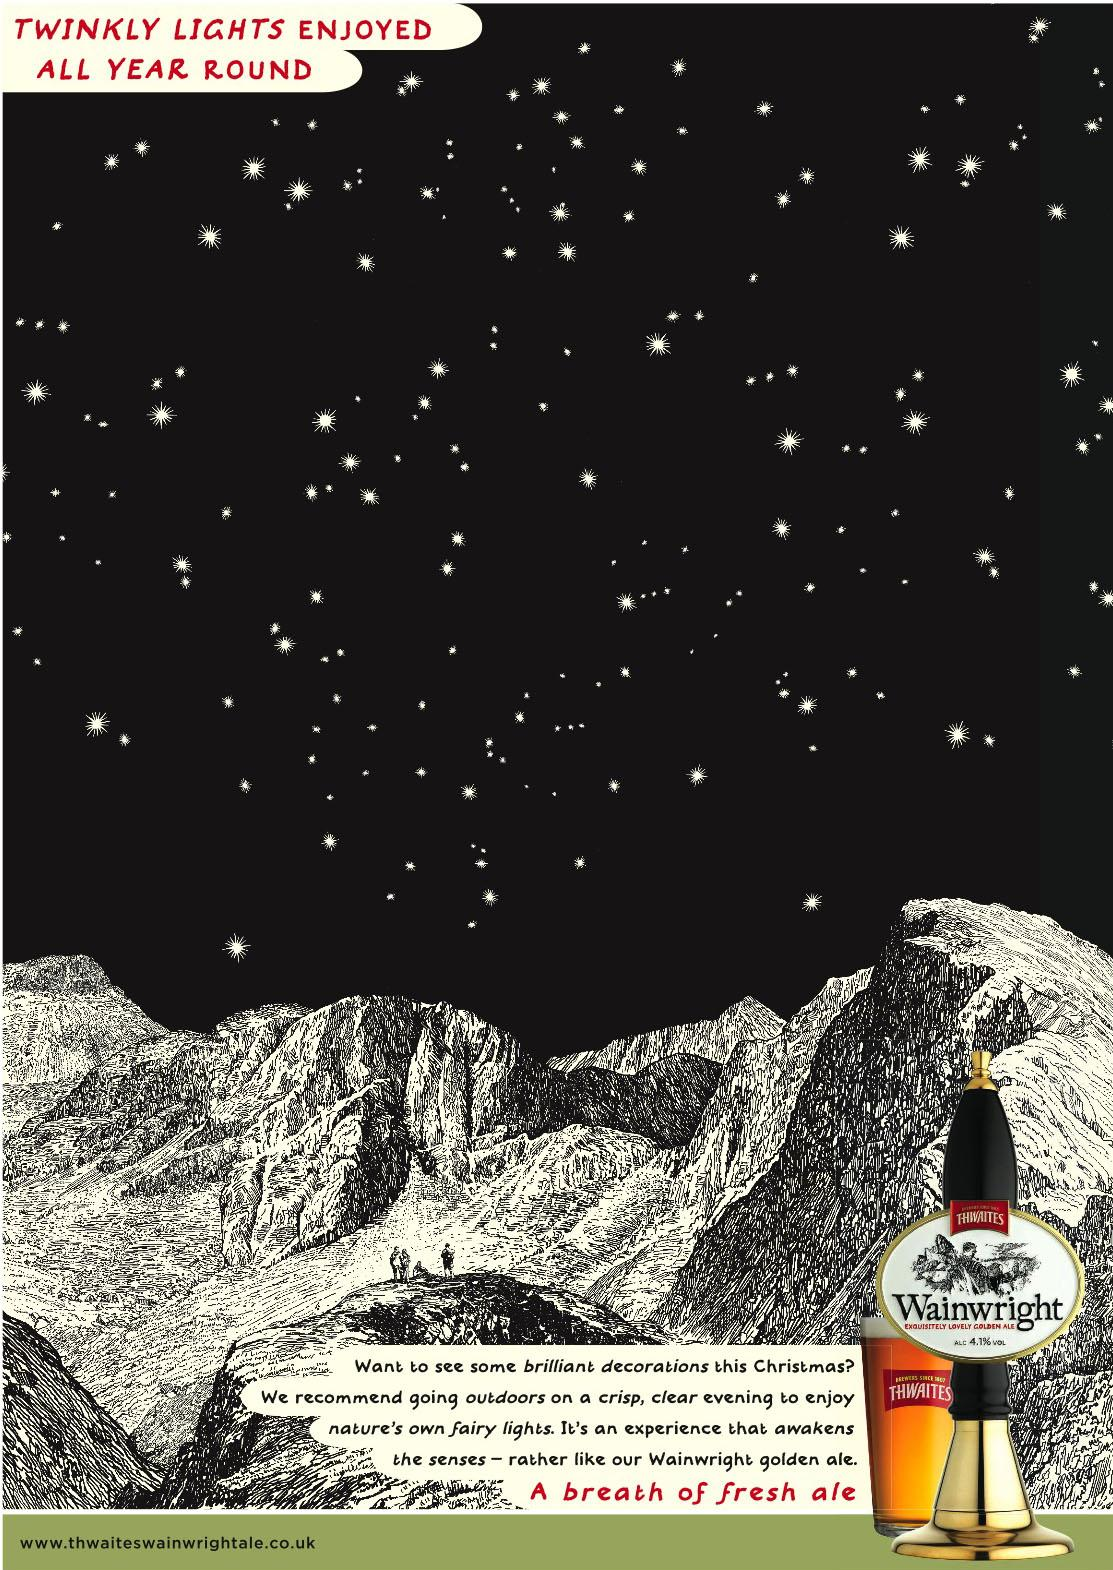 Wainwright Print Ad -  Twinkly lights